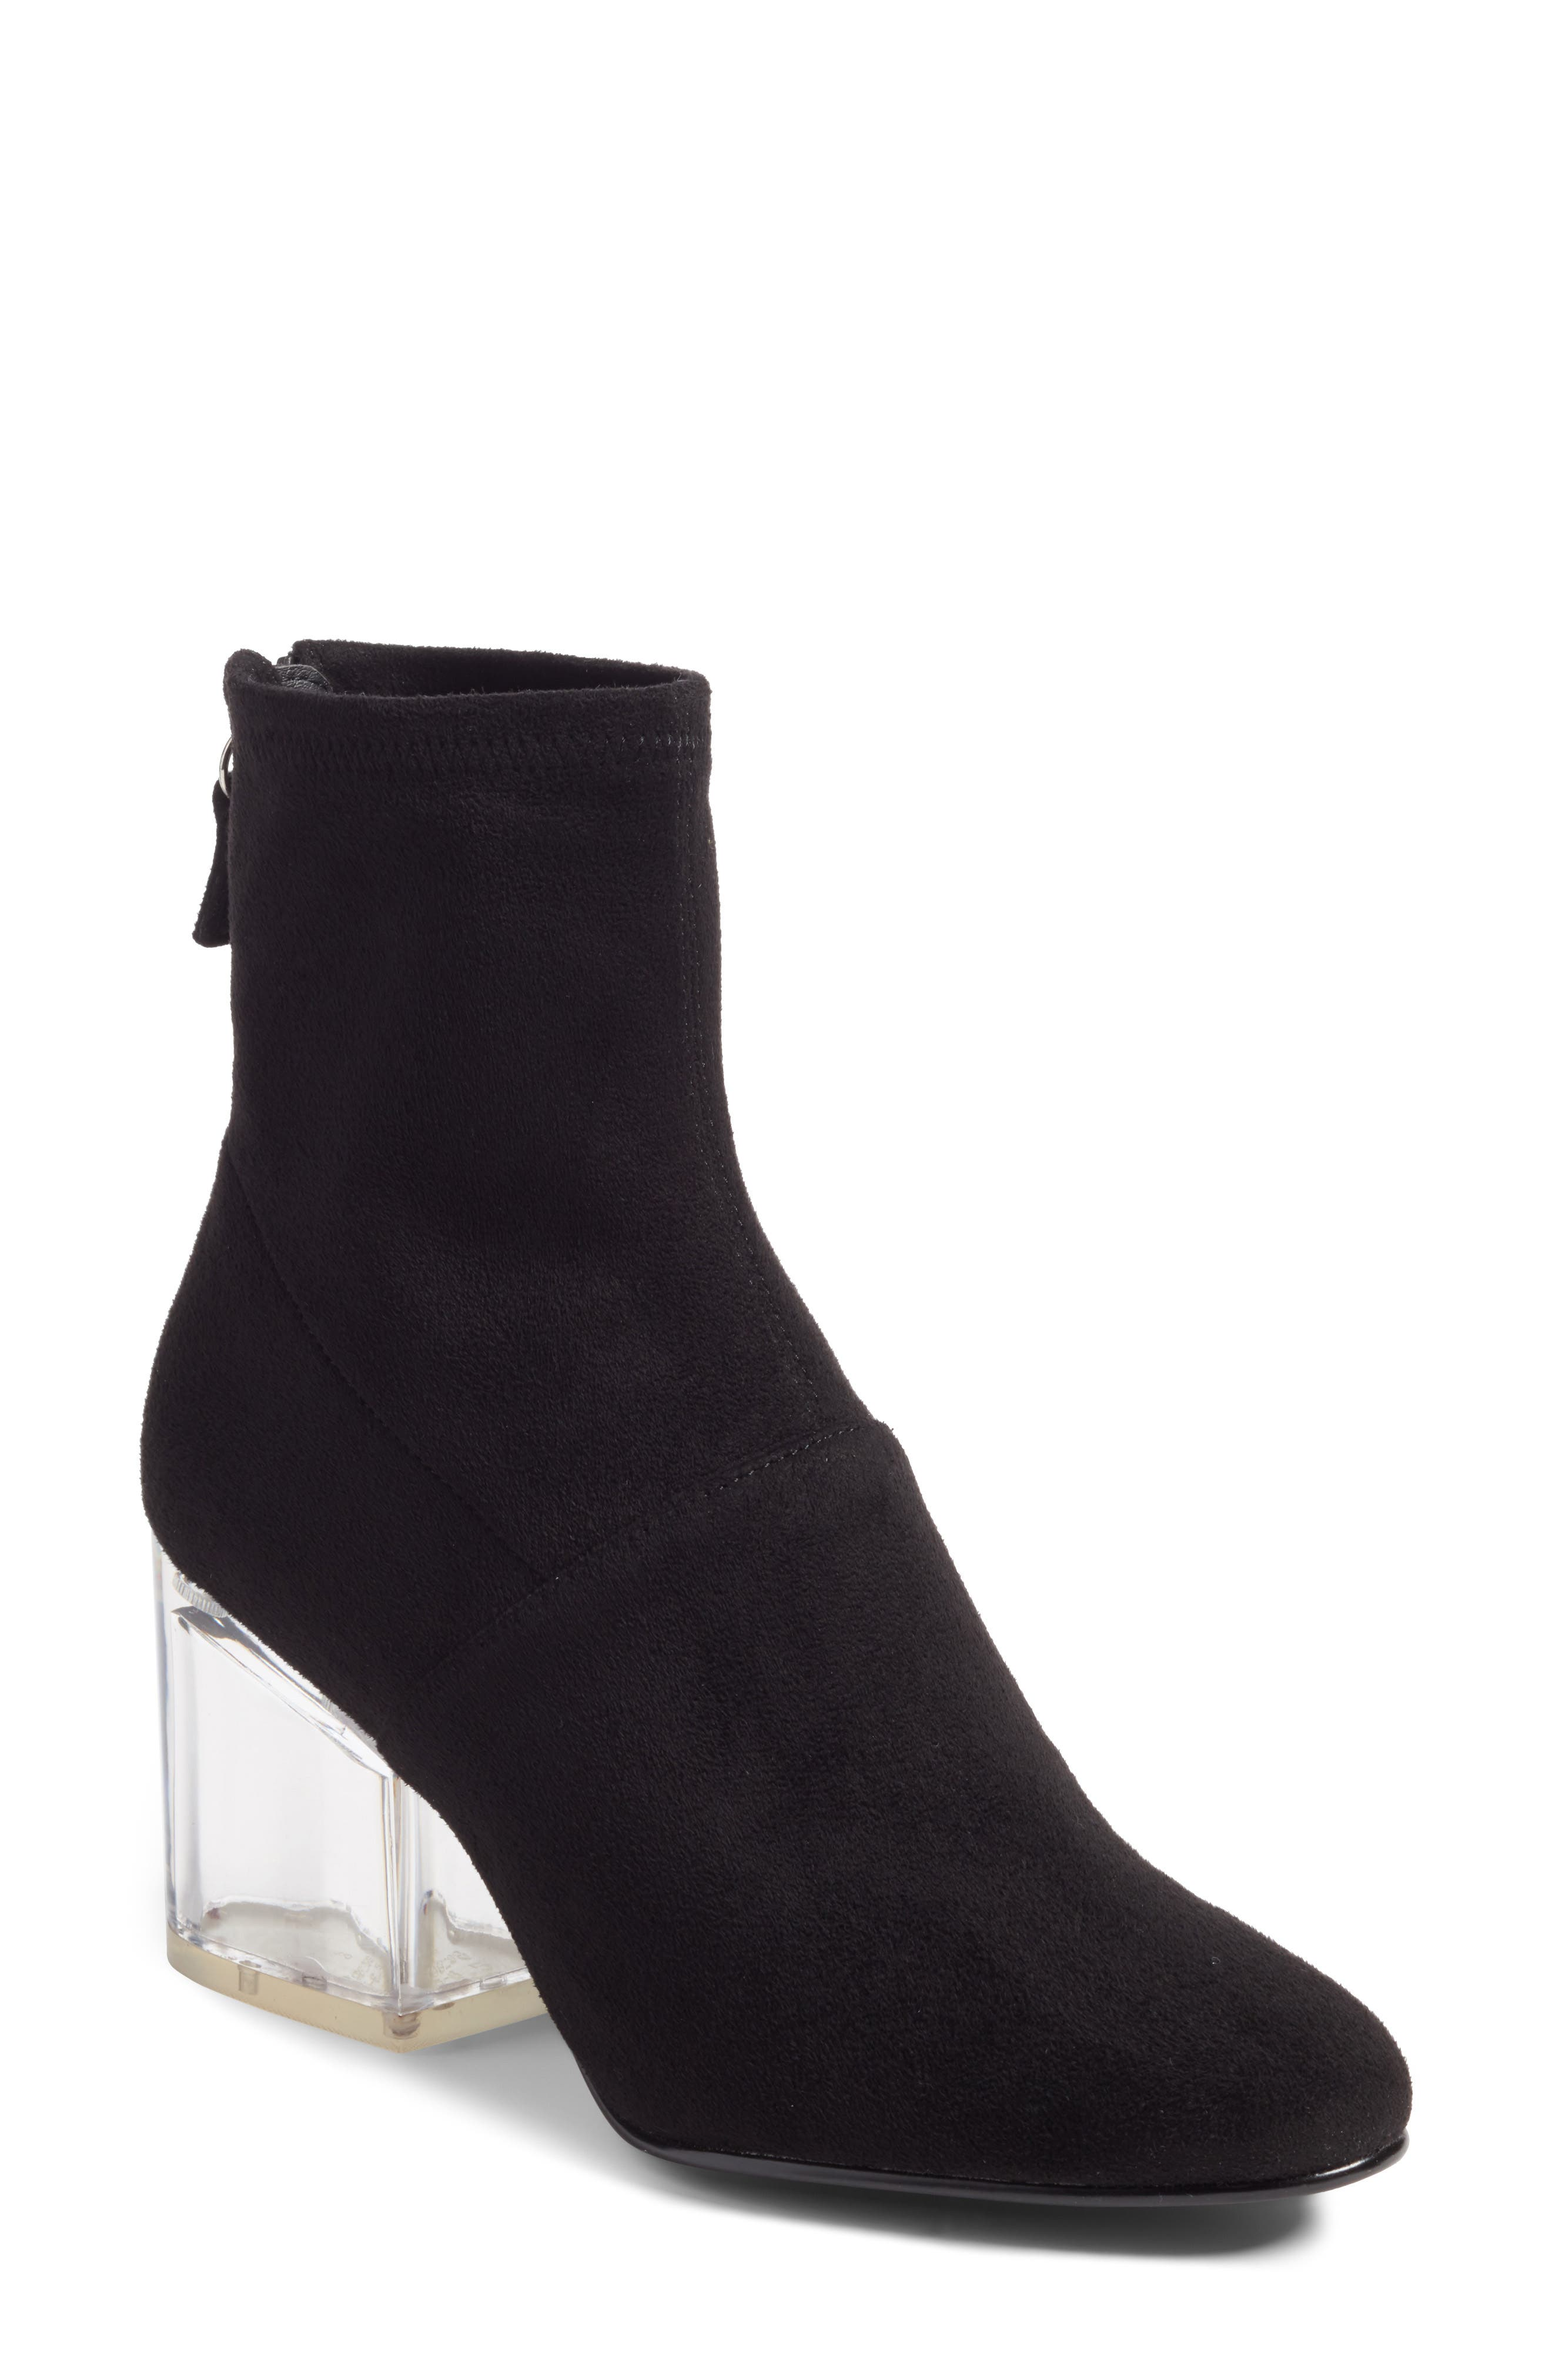 Lusty Statement Heel Bootie,                             Main thumbnail 1, color,                             Black